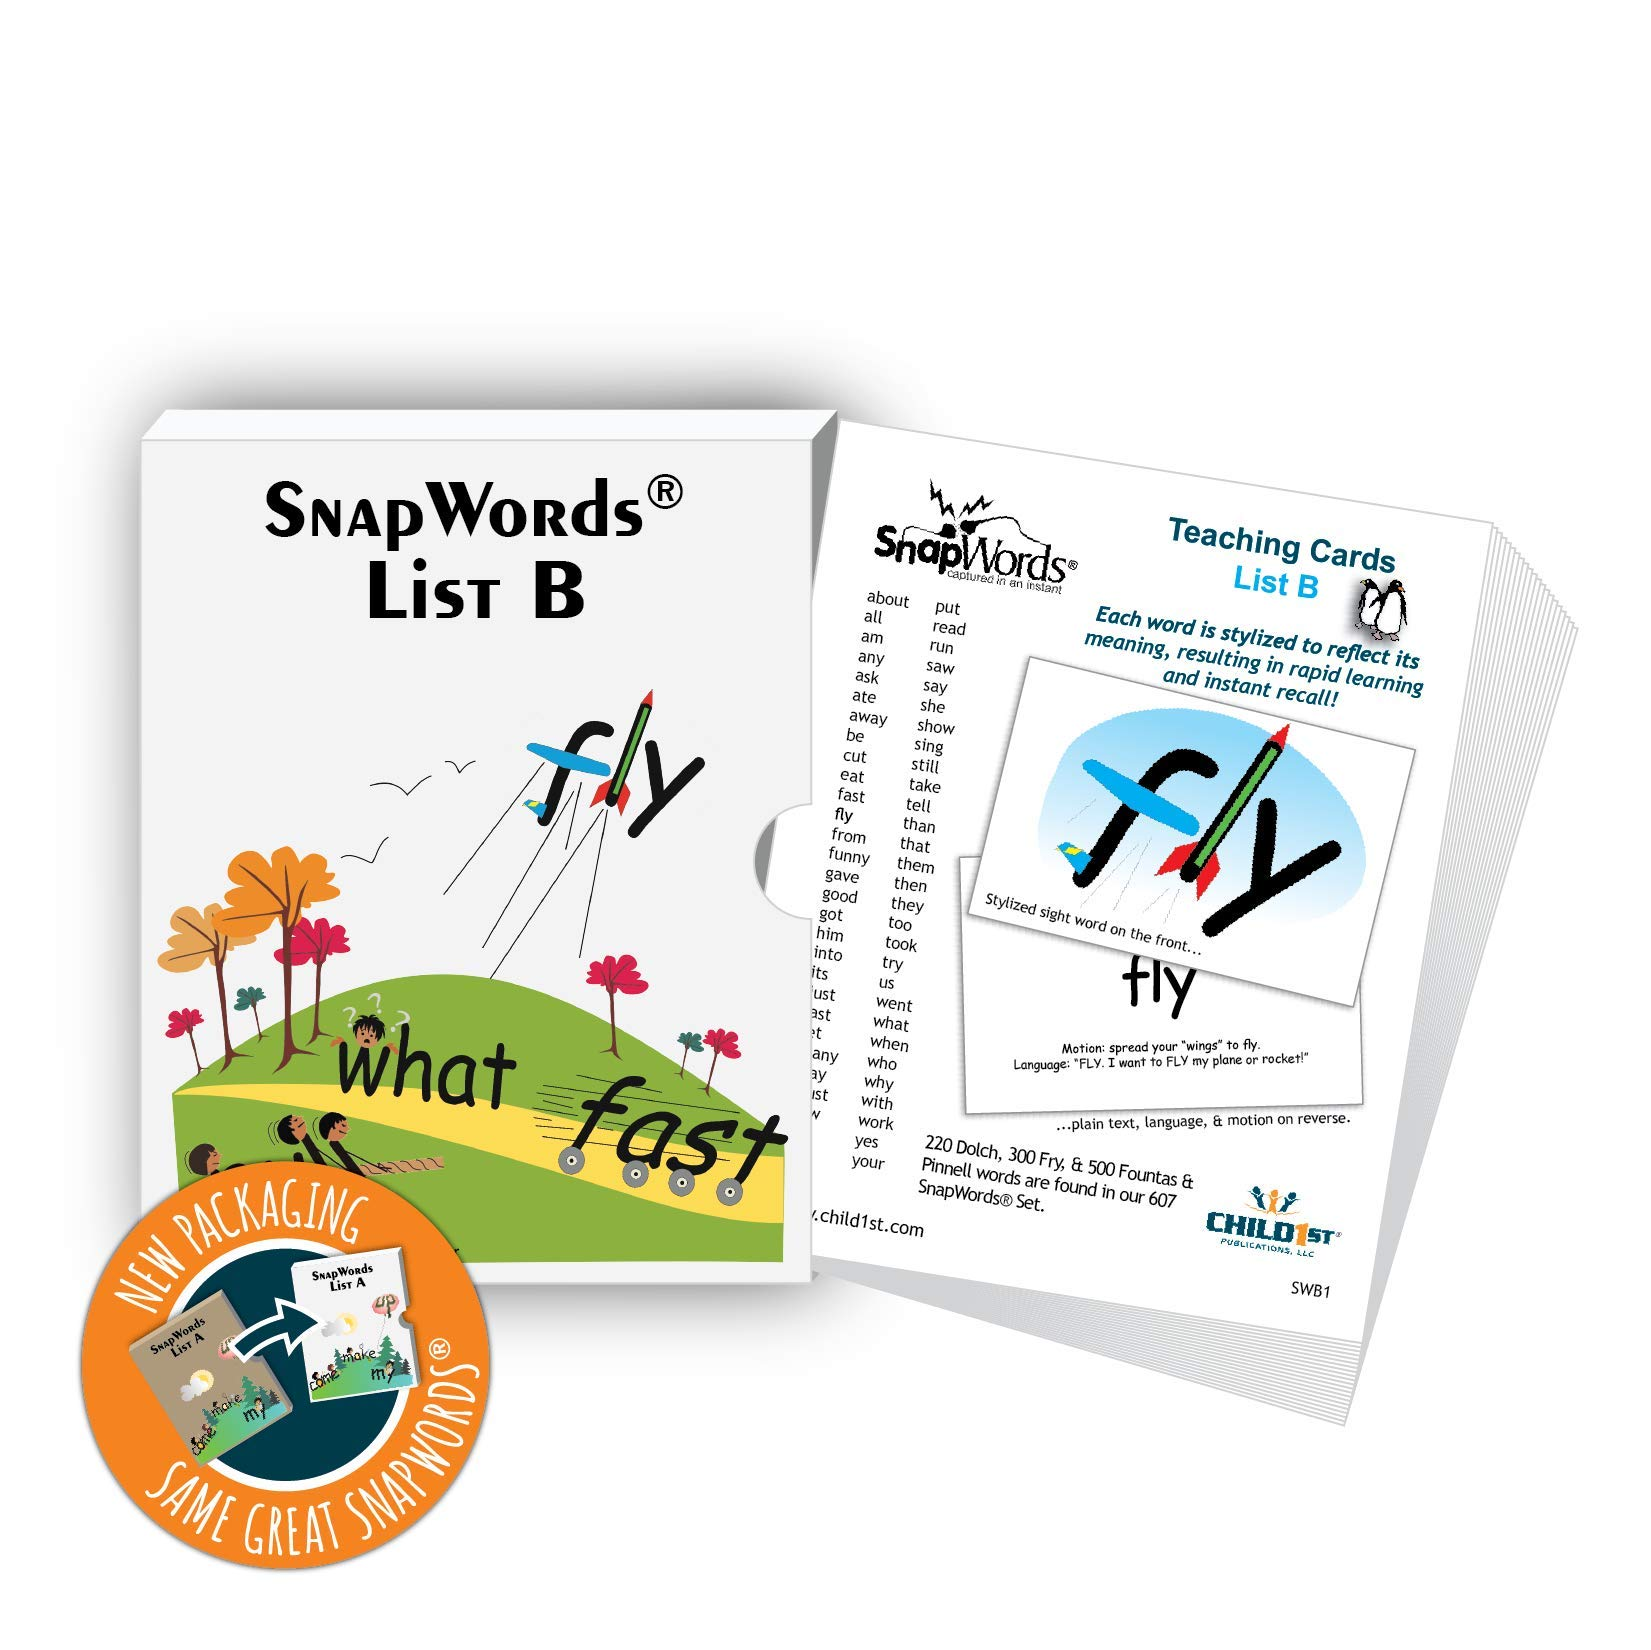 SnapWords List B Teaching Cards - Sight Words by Child1st Publications, LLC